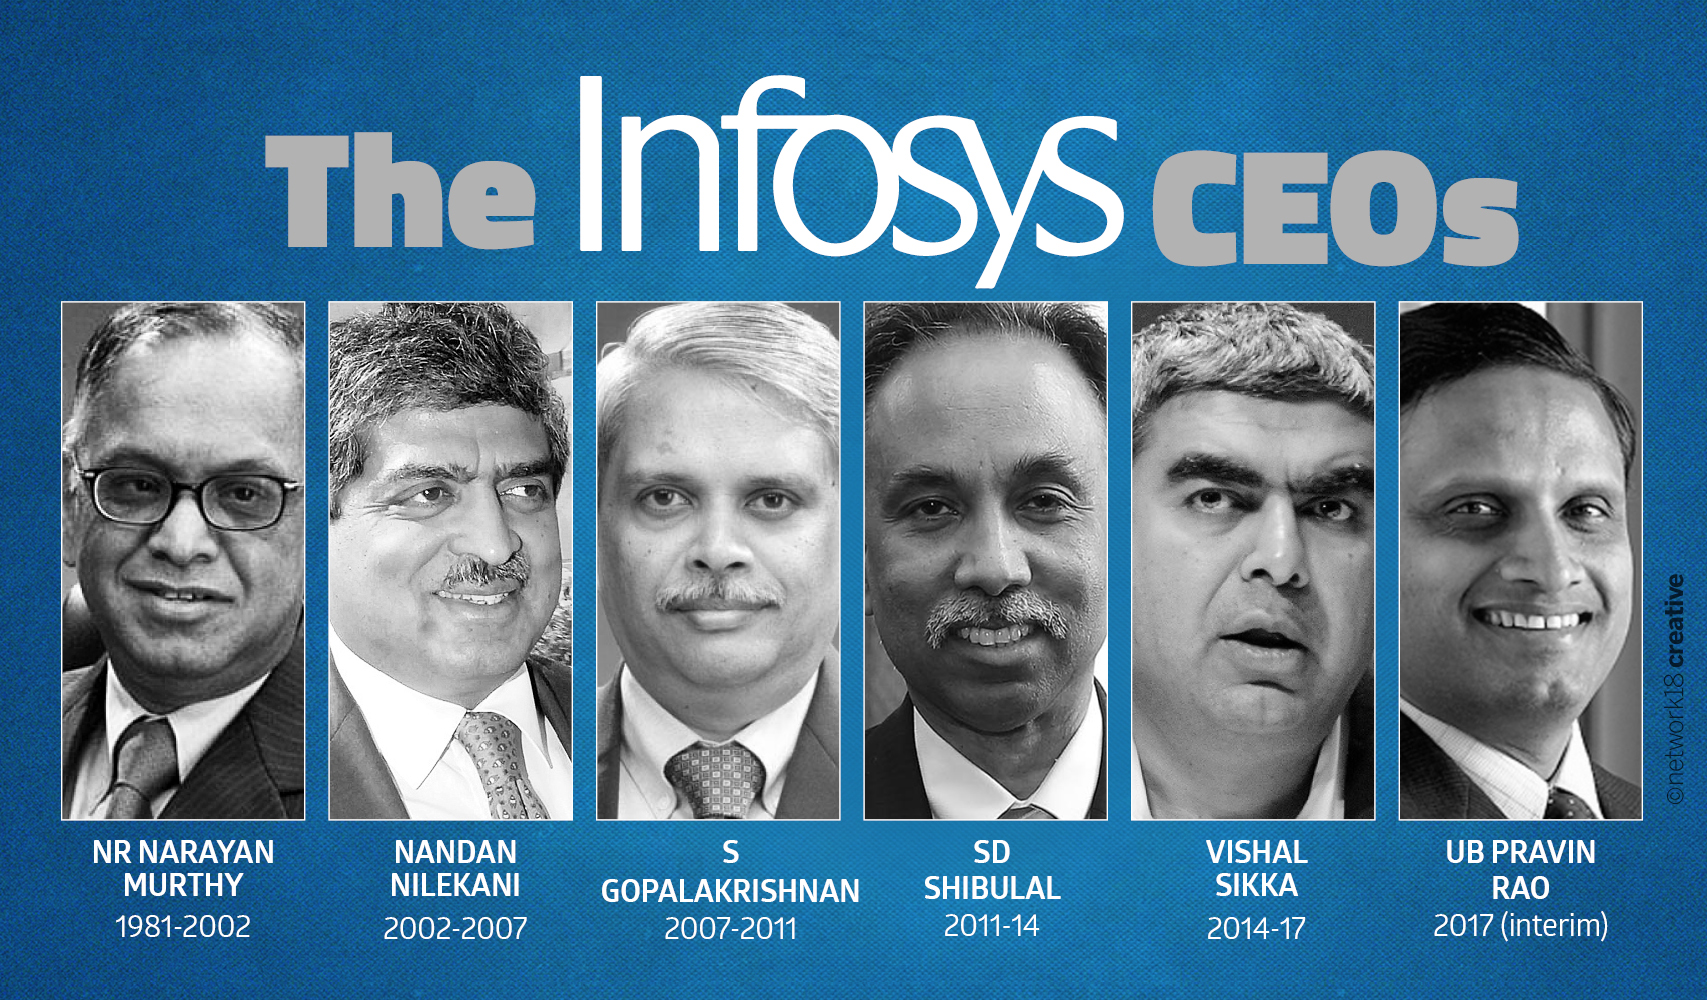 Three US law firms to investigate alleged 'securities fraud' in Infosys